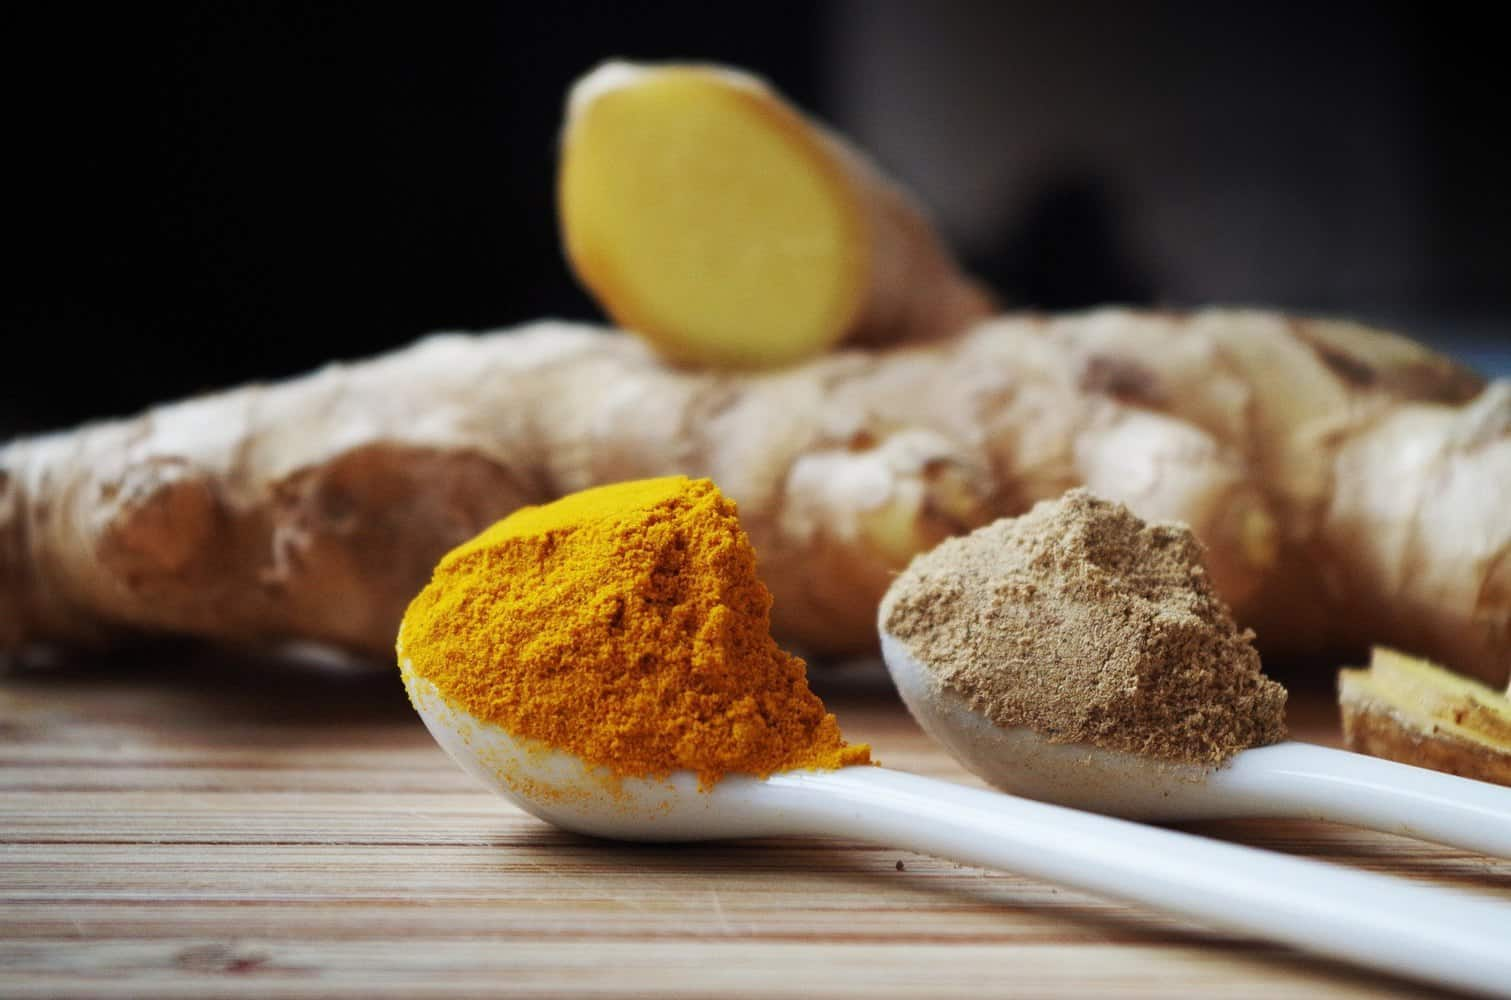 Ginger root and powder with turmeric powder.